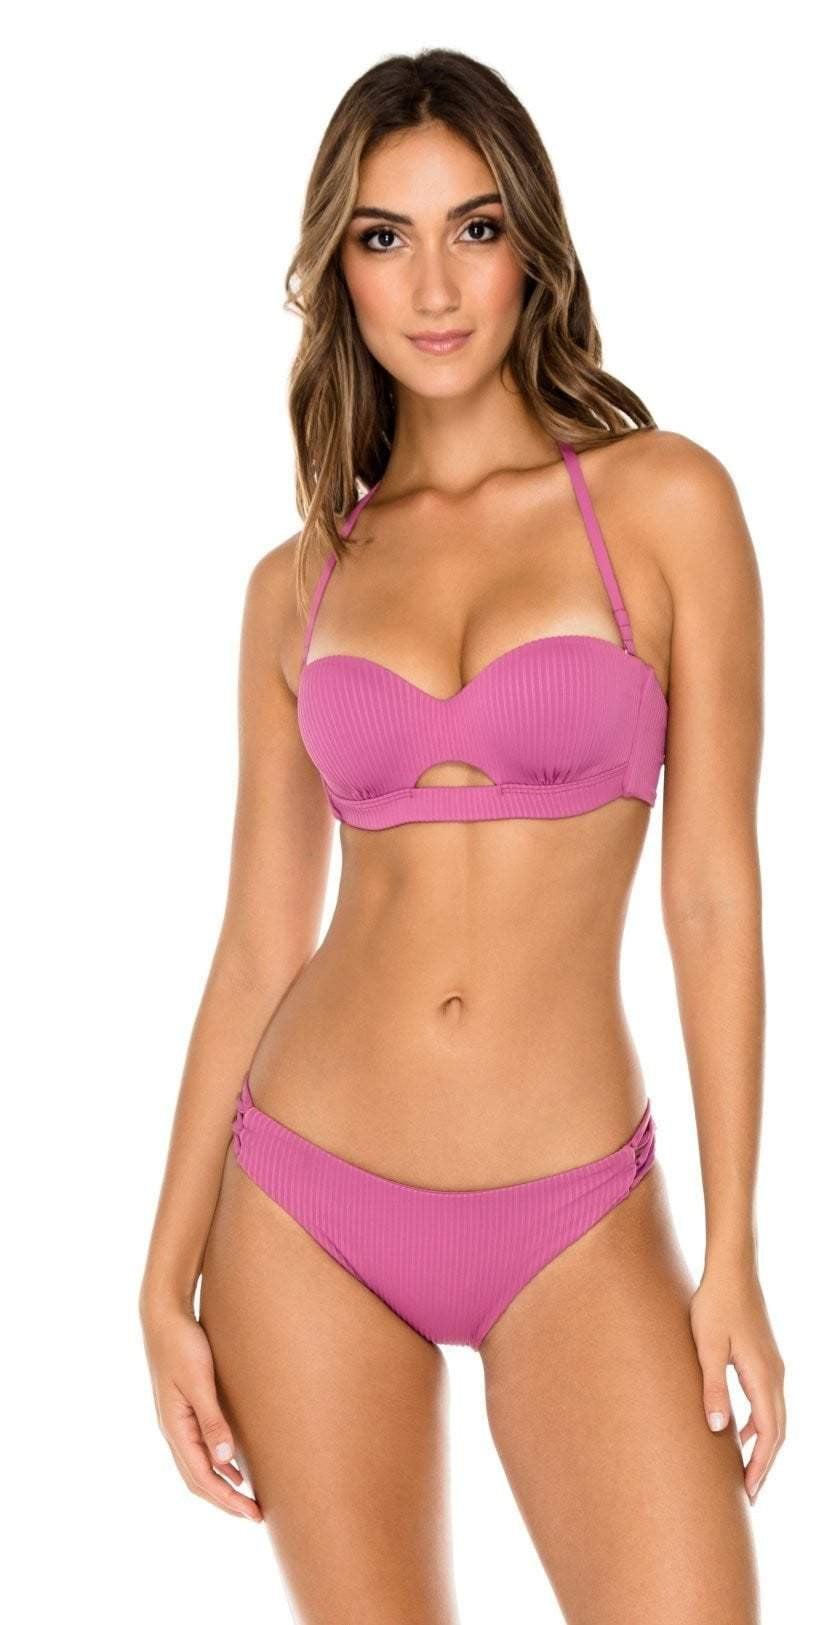 Luli Fama Orillas del Mar Peek-a-Boo Underwire Bandeau in Purple L500N61 481: